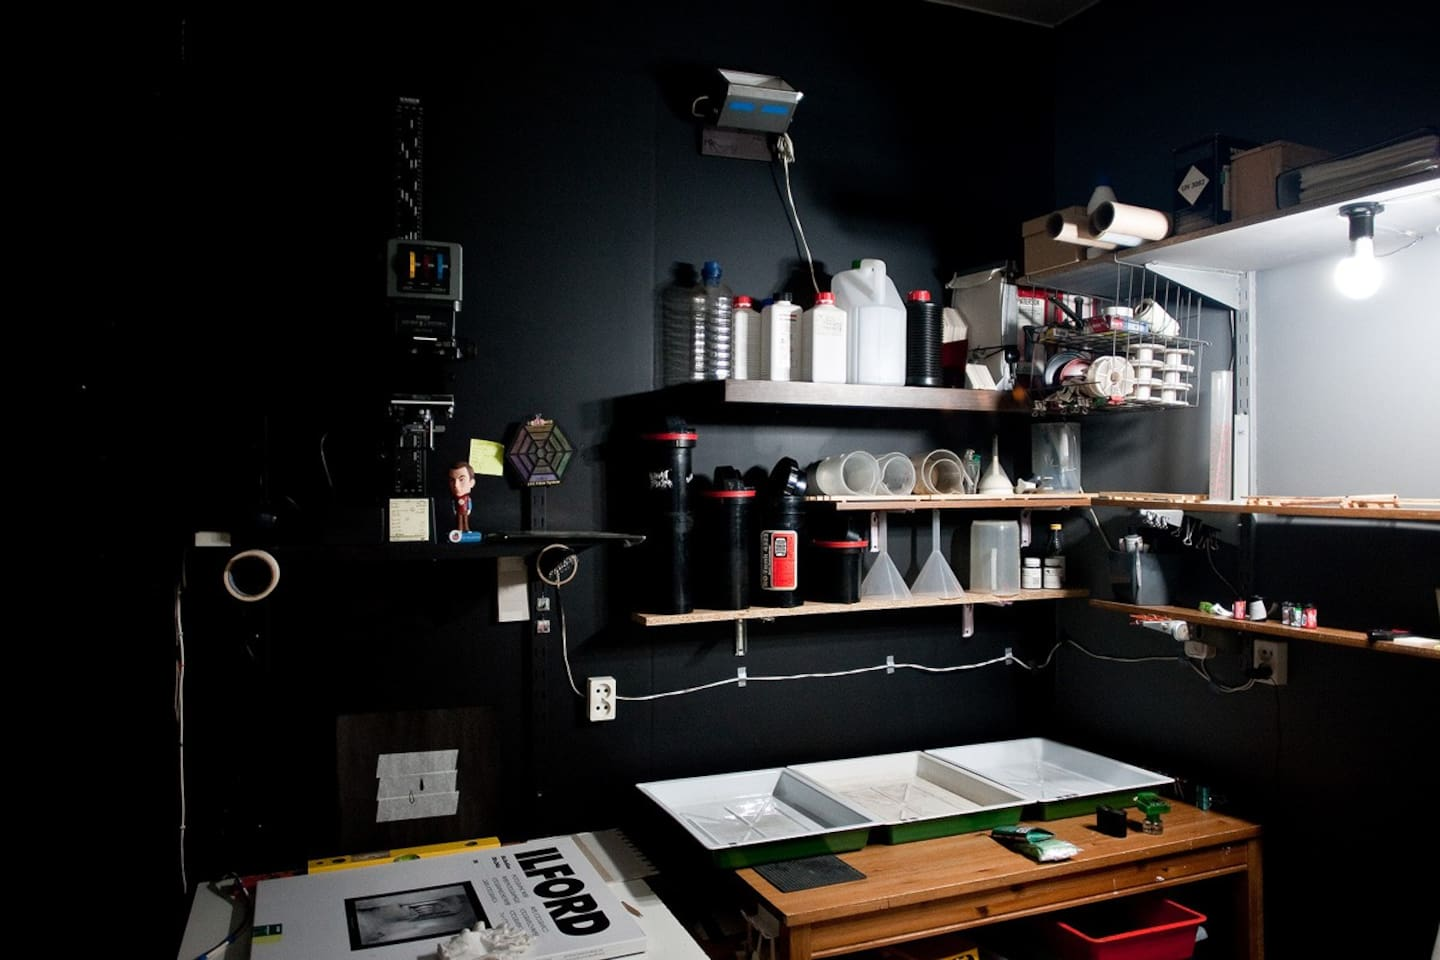 my room and photo lab, here I am developing films, I print photos and I live